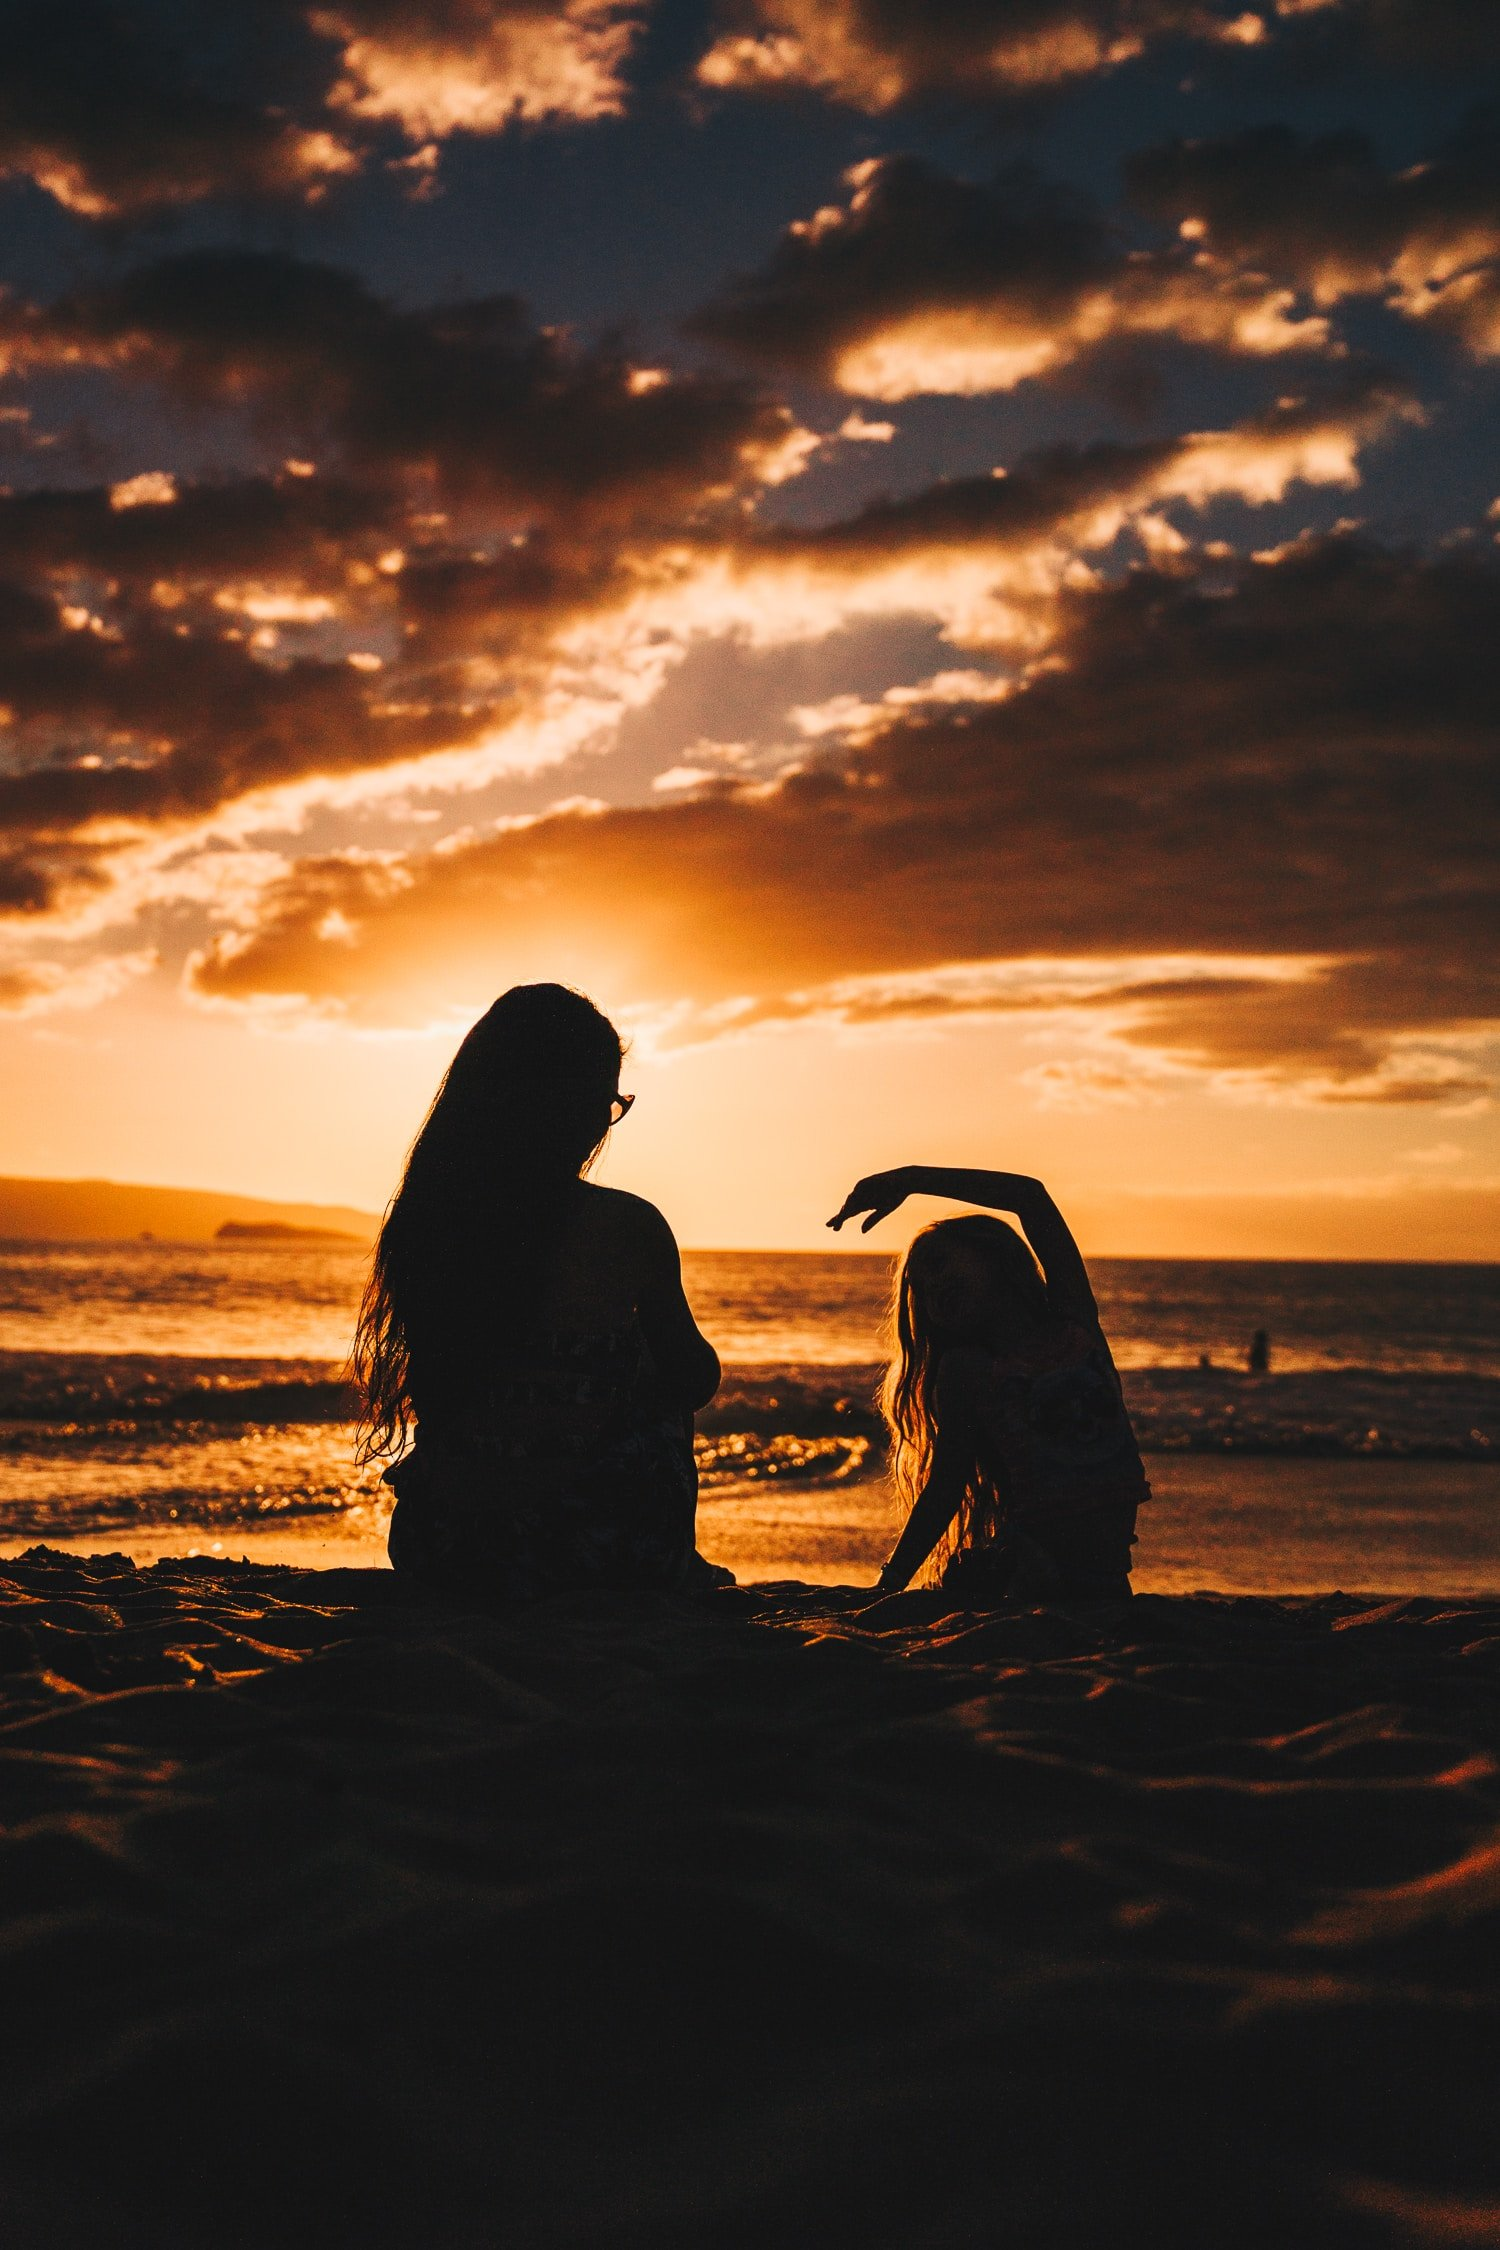 woman and girl in sunset